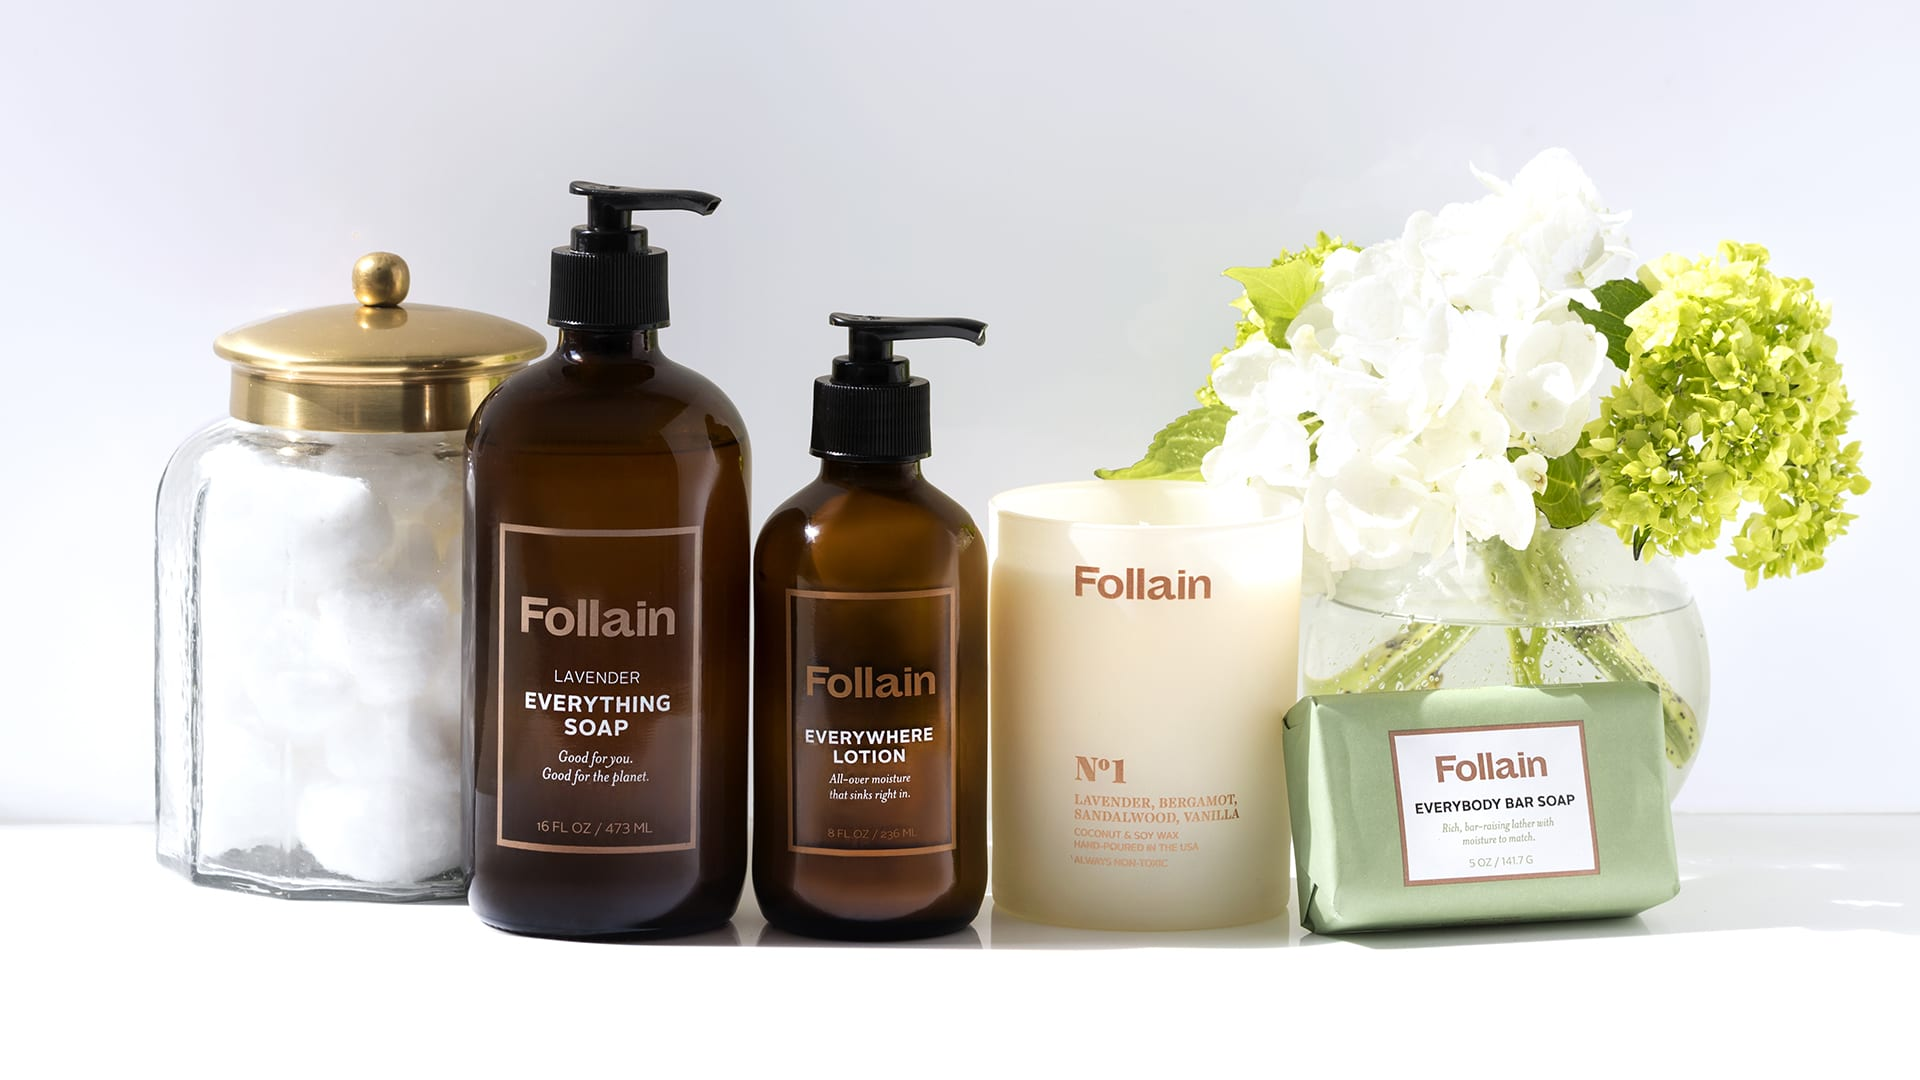 Follain products